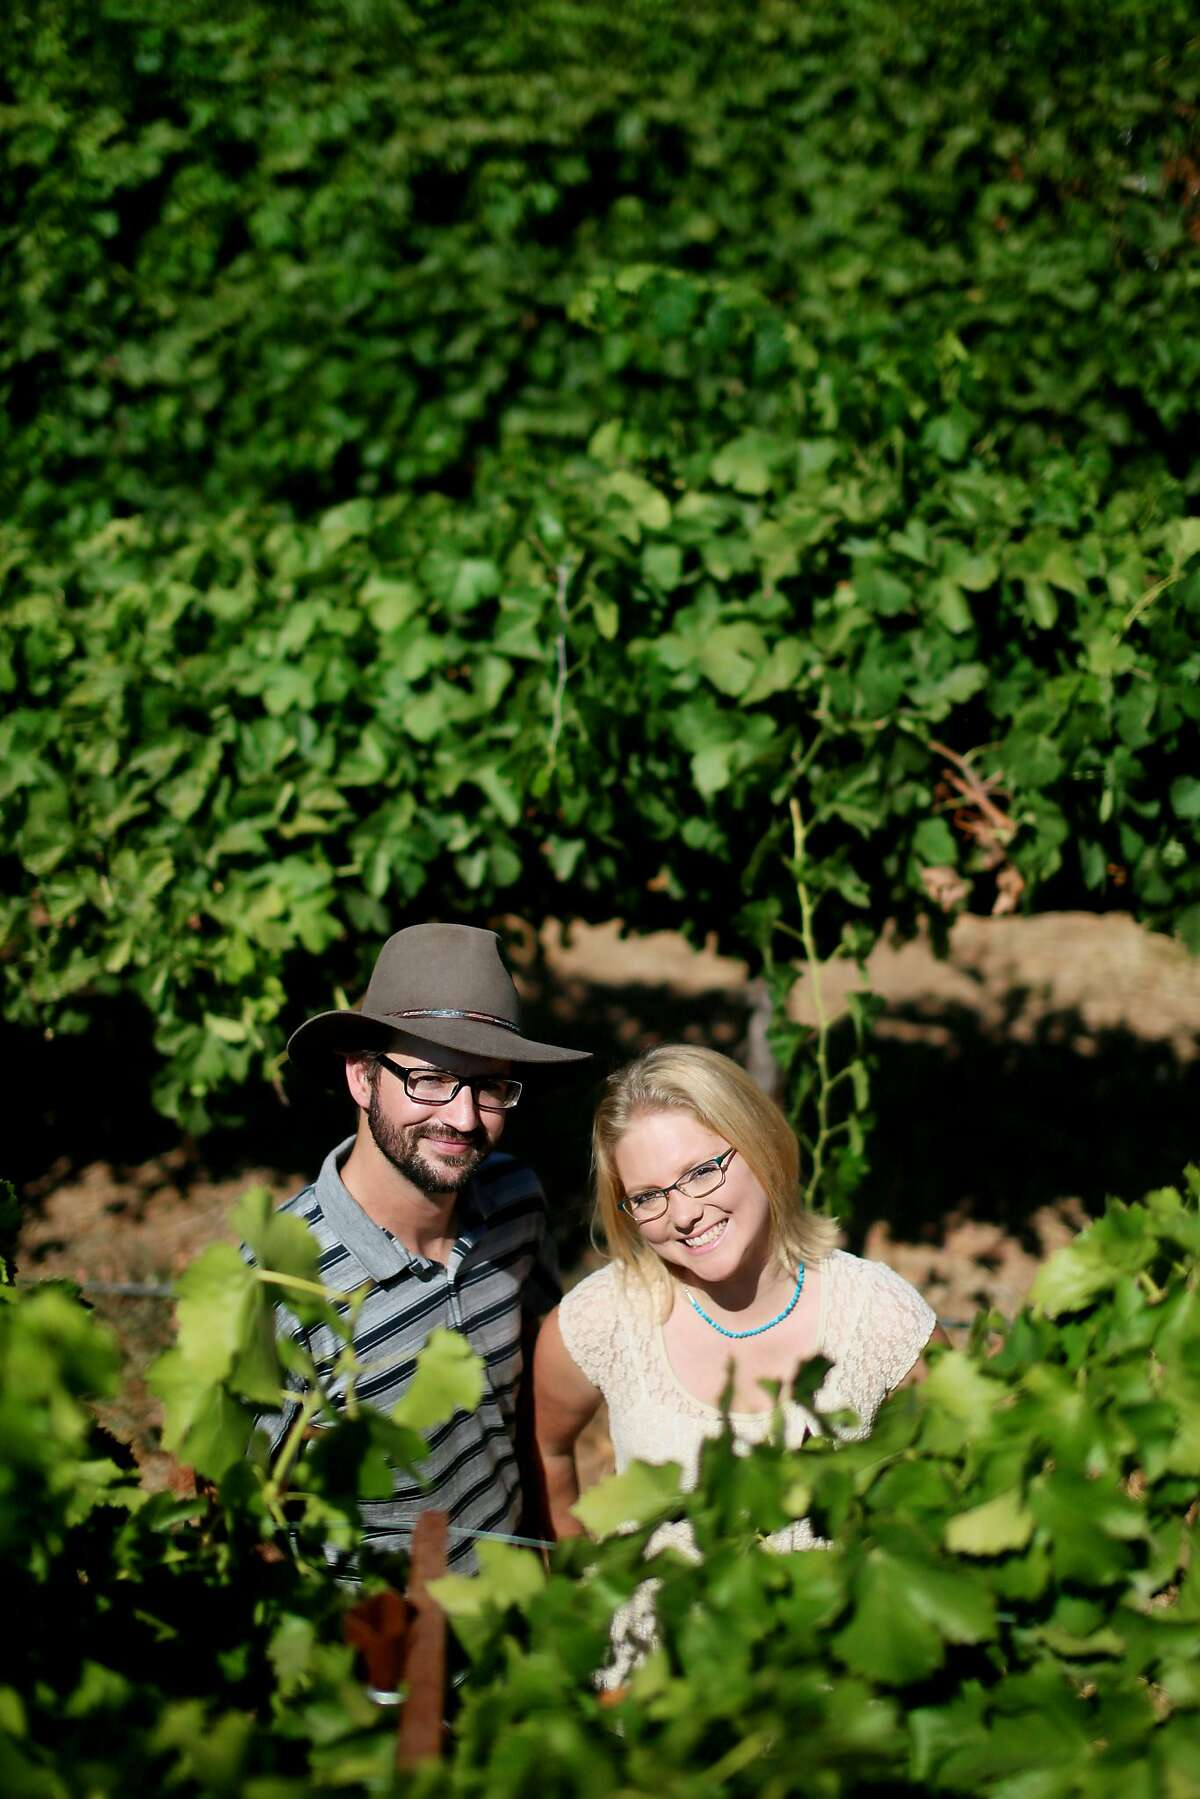 Alysha Stehly and Chris Broomwell stand at Highland Hills Vinyard in Ramona, CA on Friday, August 16, 2013. Chris and Alysha (husband and wife) both come from old SD farming families, and now make wine together, with some combination of their own label and work done for the vineyards that Alysha's father installs.(Photo by Sandy Huffaker for The SF Chronicle)